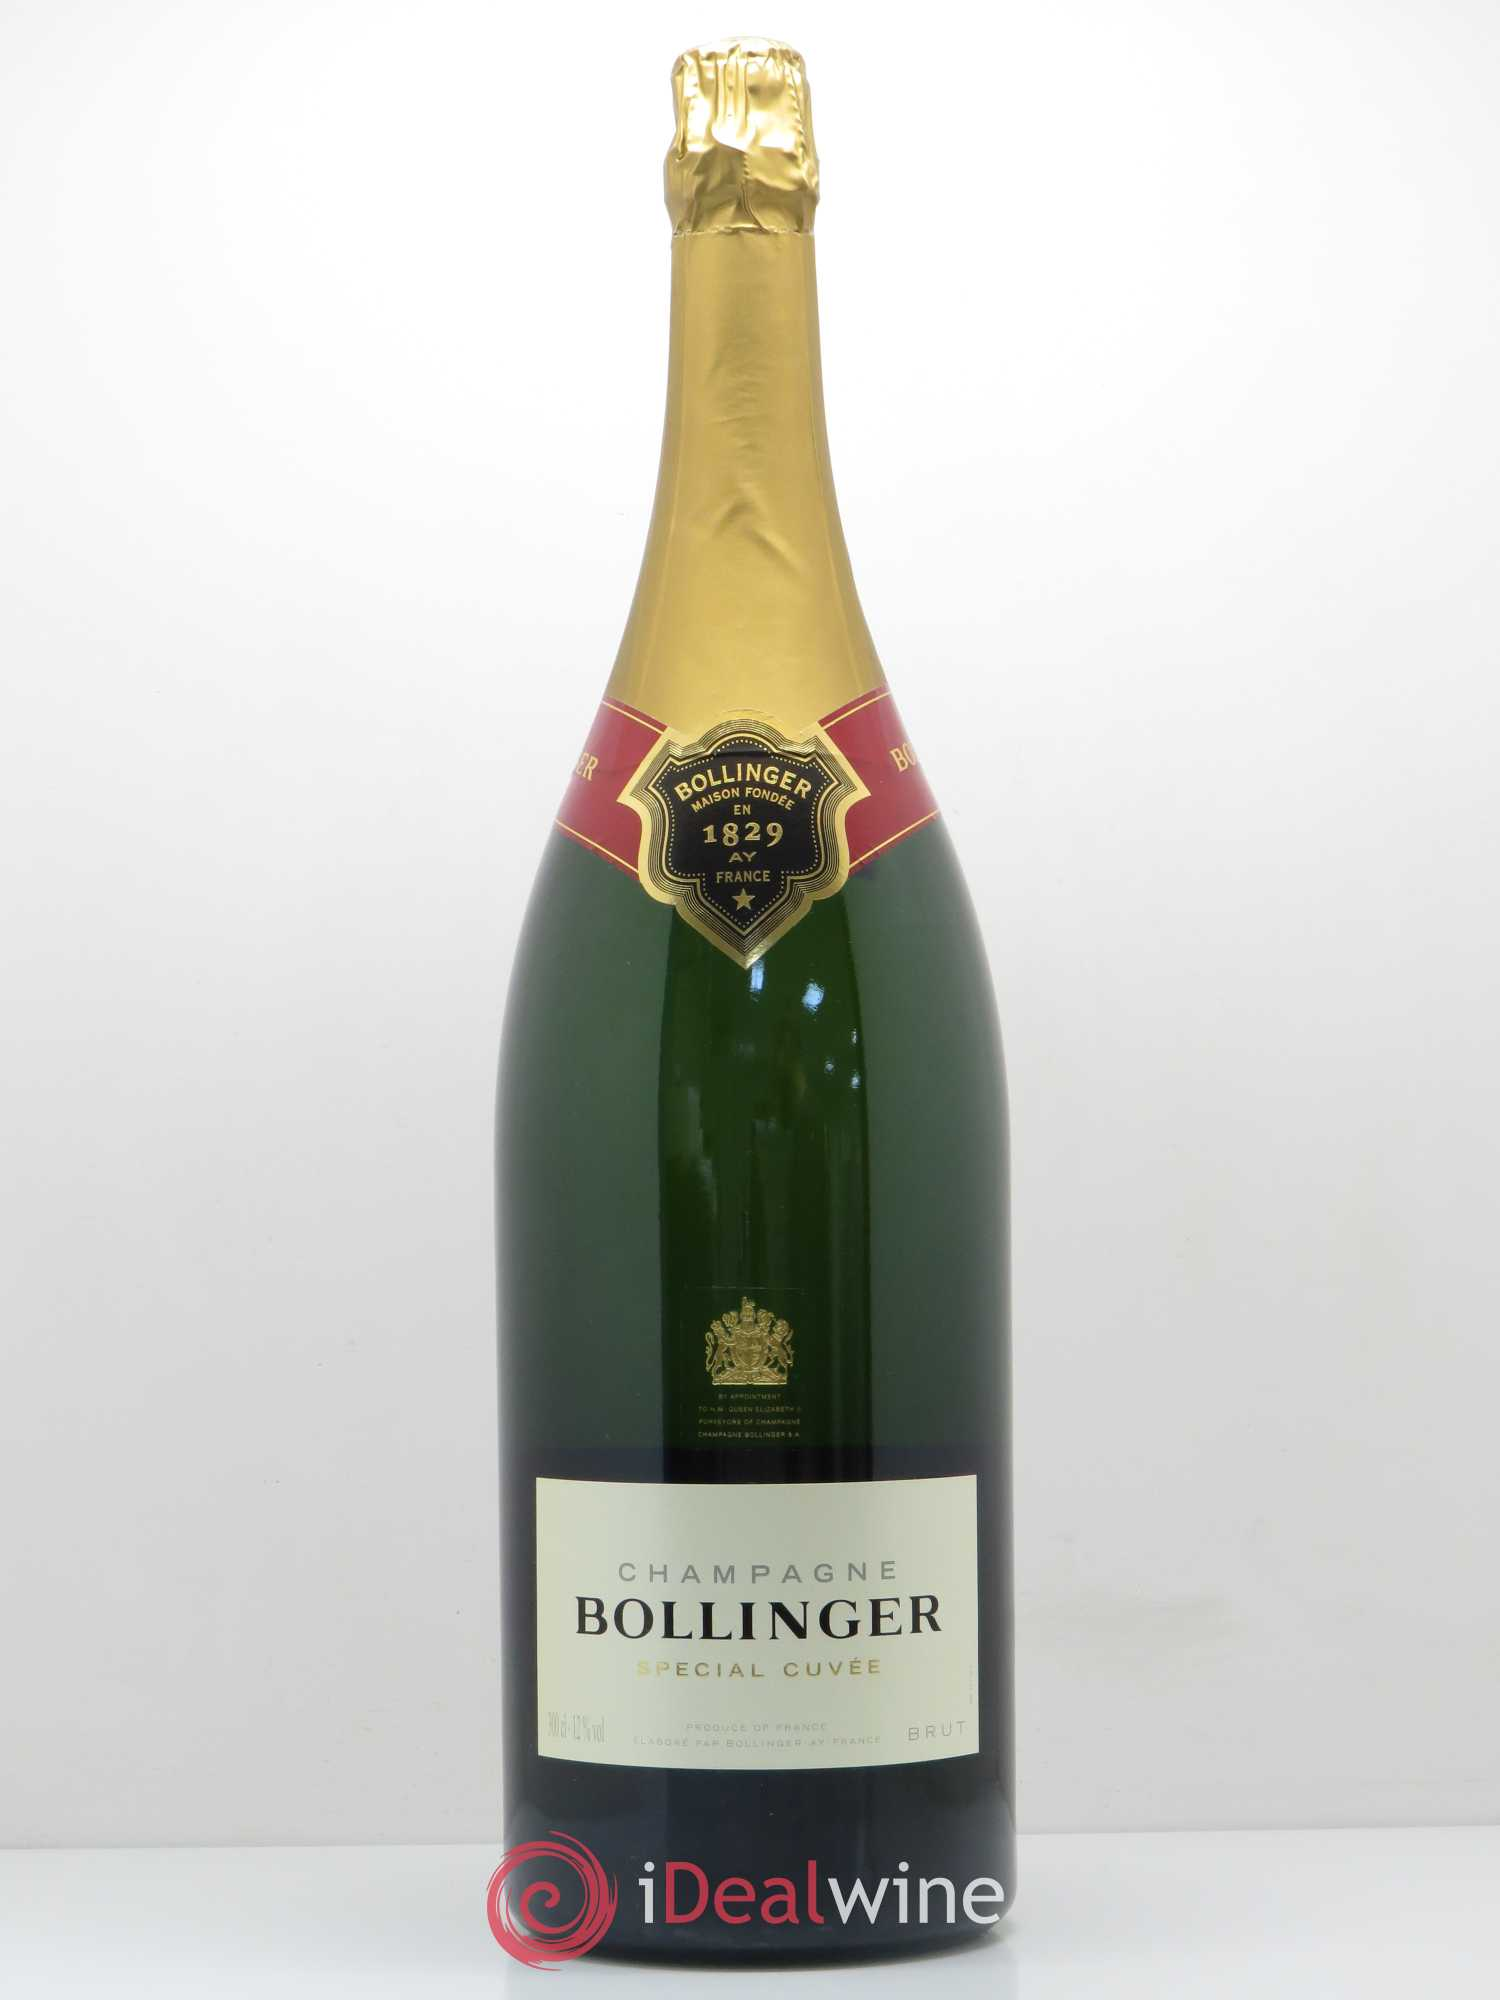 Special Cuvée Bollinger   - Lot of 1 Double-magnum